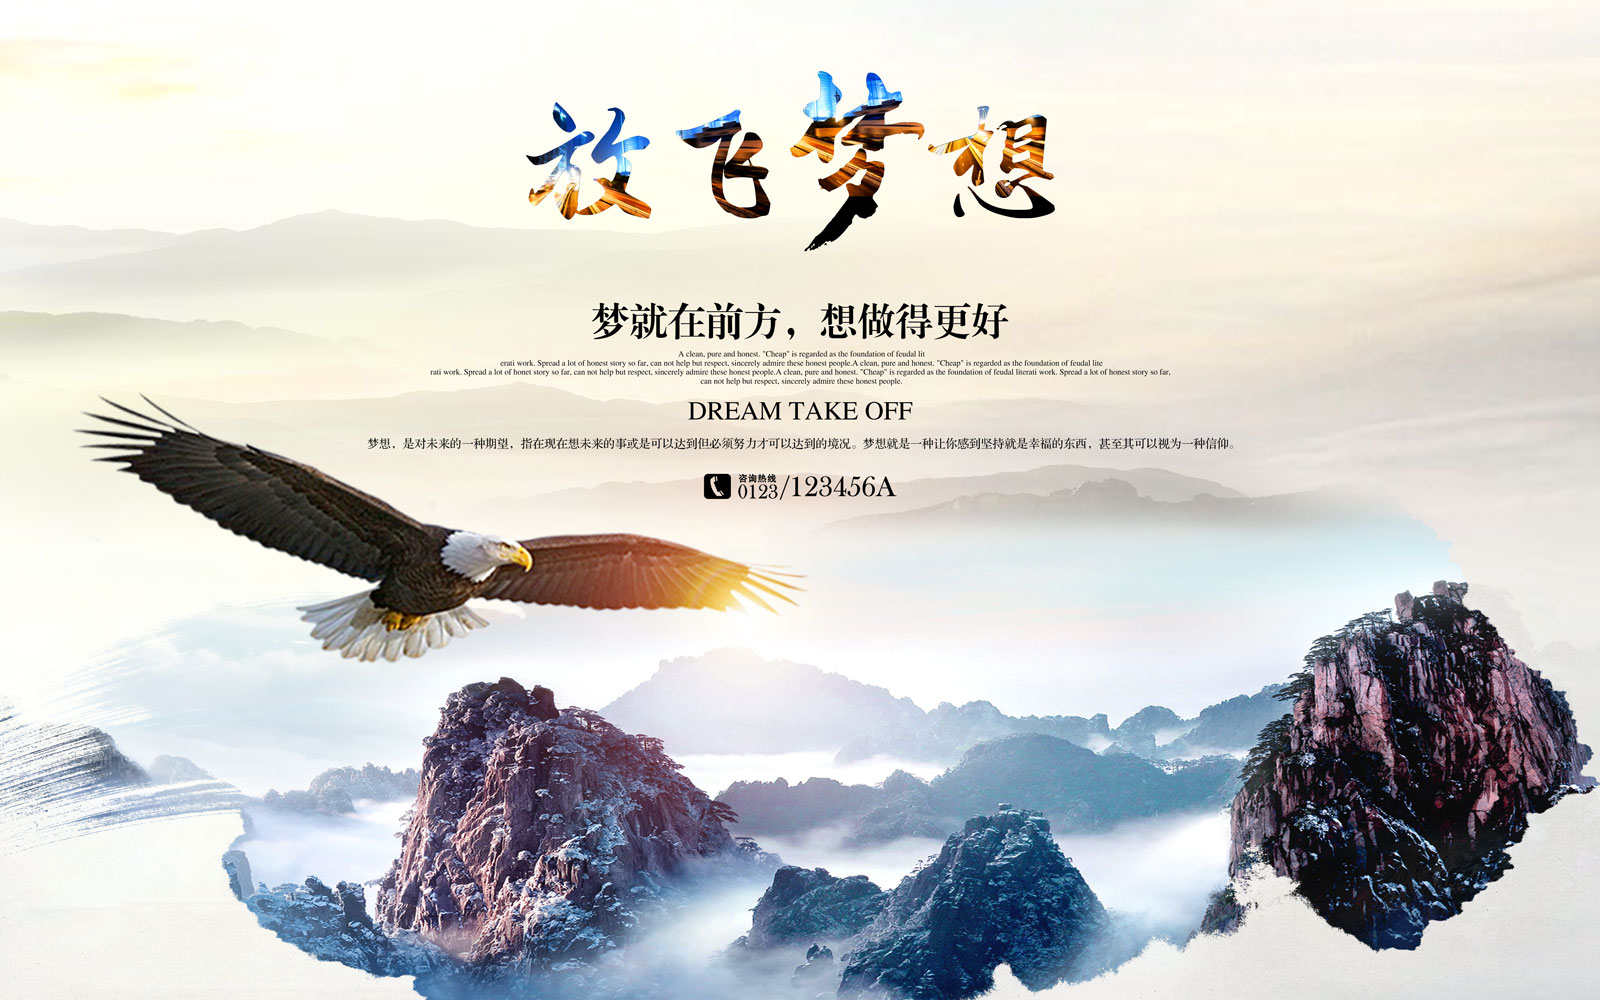 chinesefontdesign.com 2017 03 21 16 23 39 Flying dream business culture poster PSD material   China PSD File Free Download